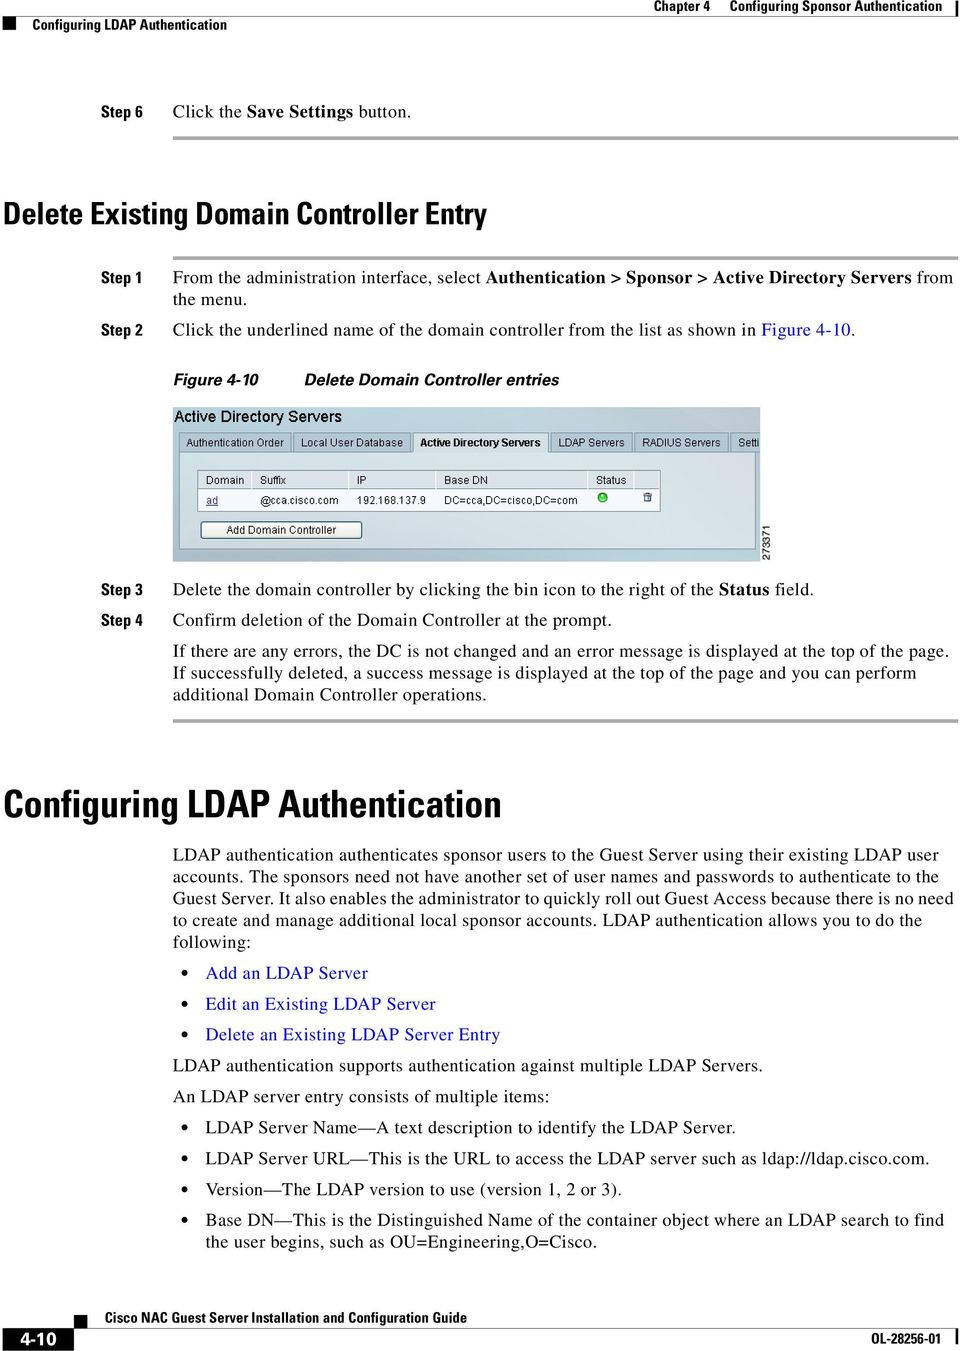 Step 2 Click the underlined name of the domain controller from the list as shown in Figure 4-10.